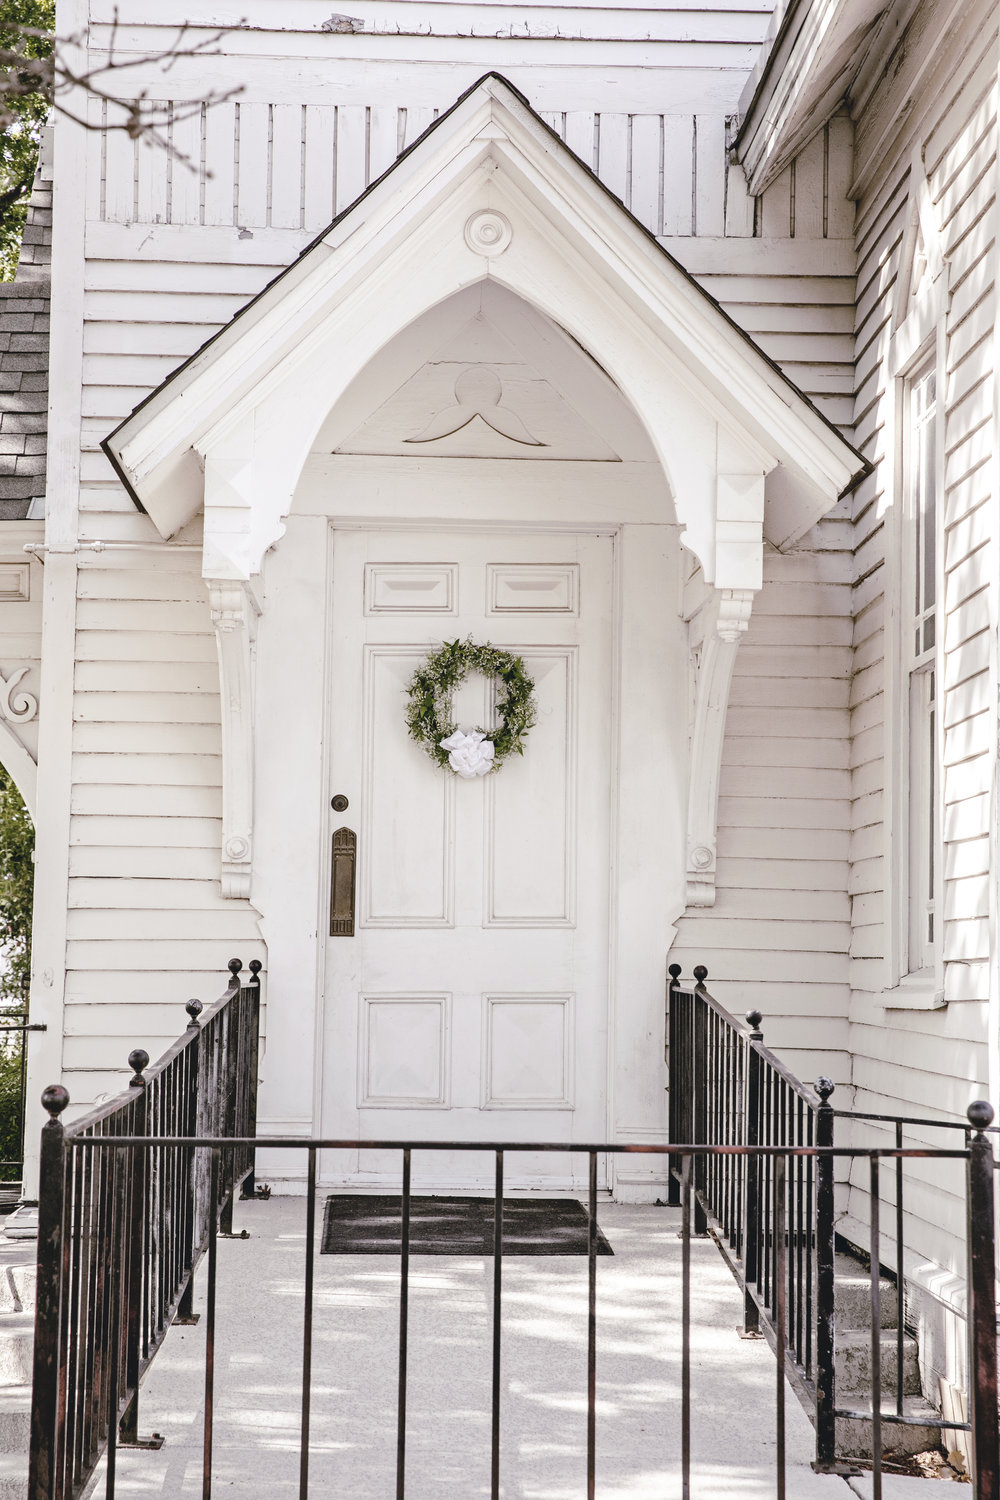 charming rustic white church / Lorena texas / heirloomed travel